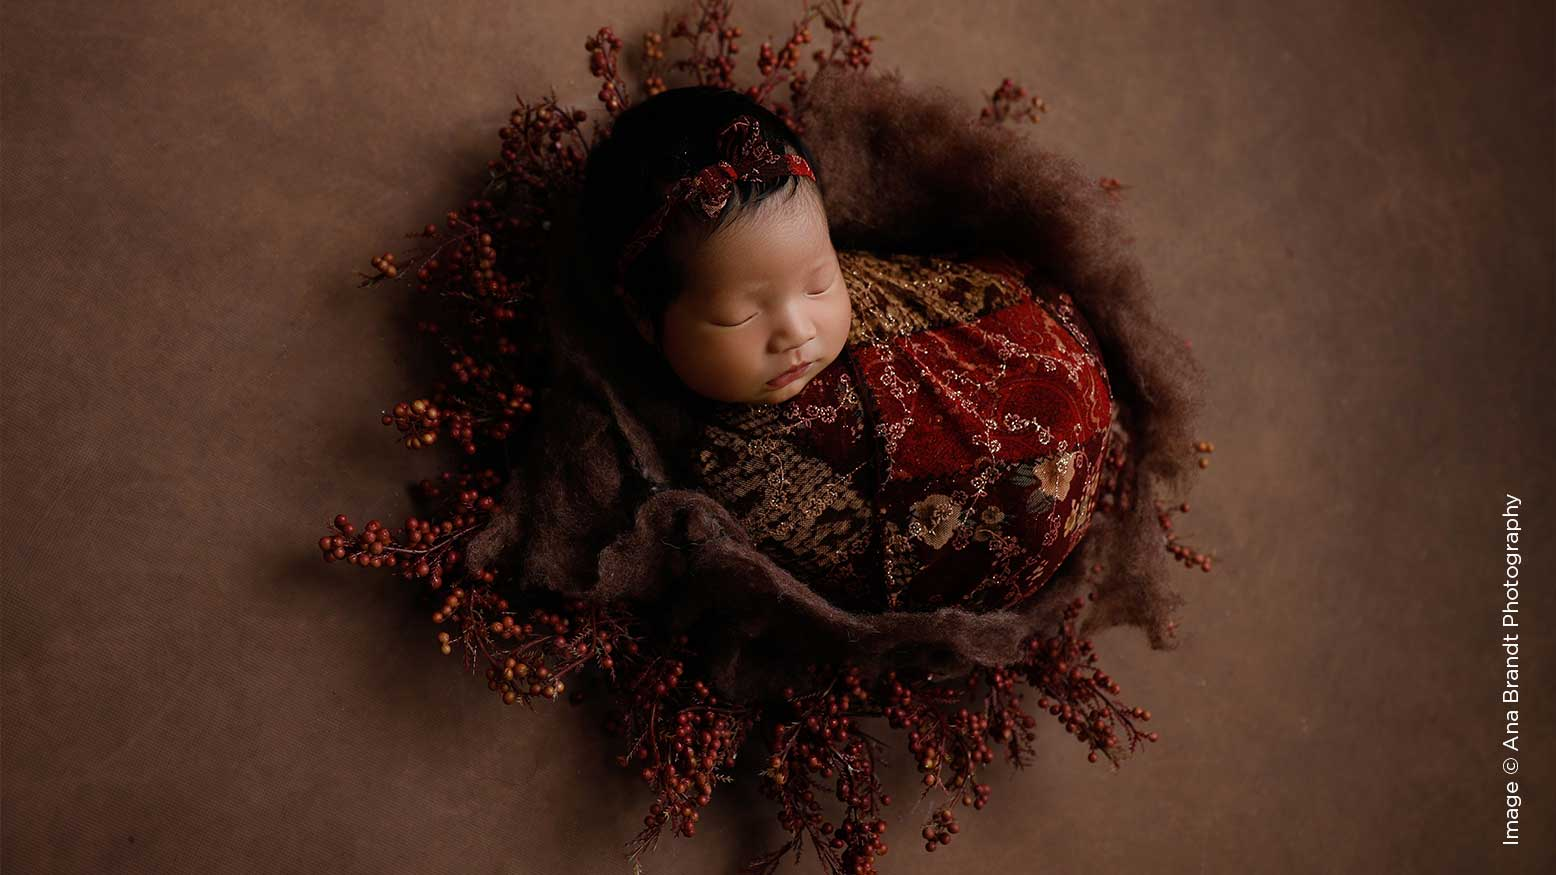 Newborn Photography | 6 Tips for Choosing Props